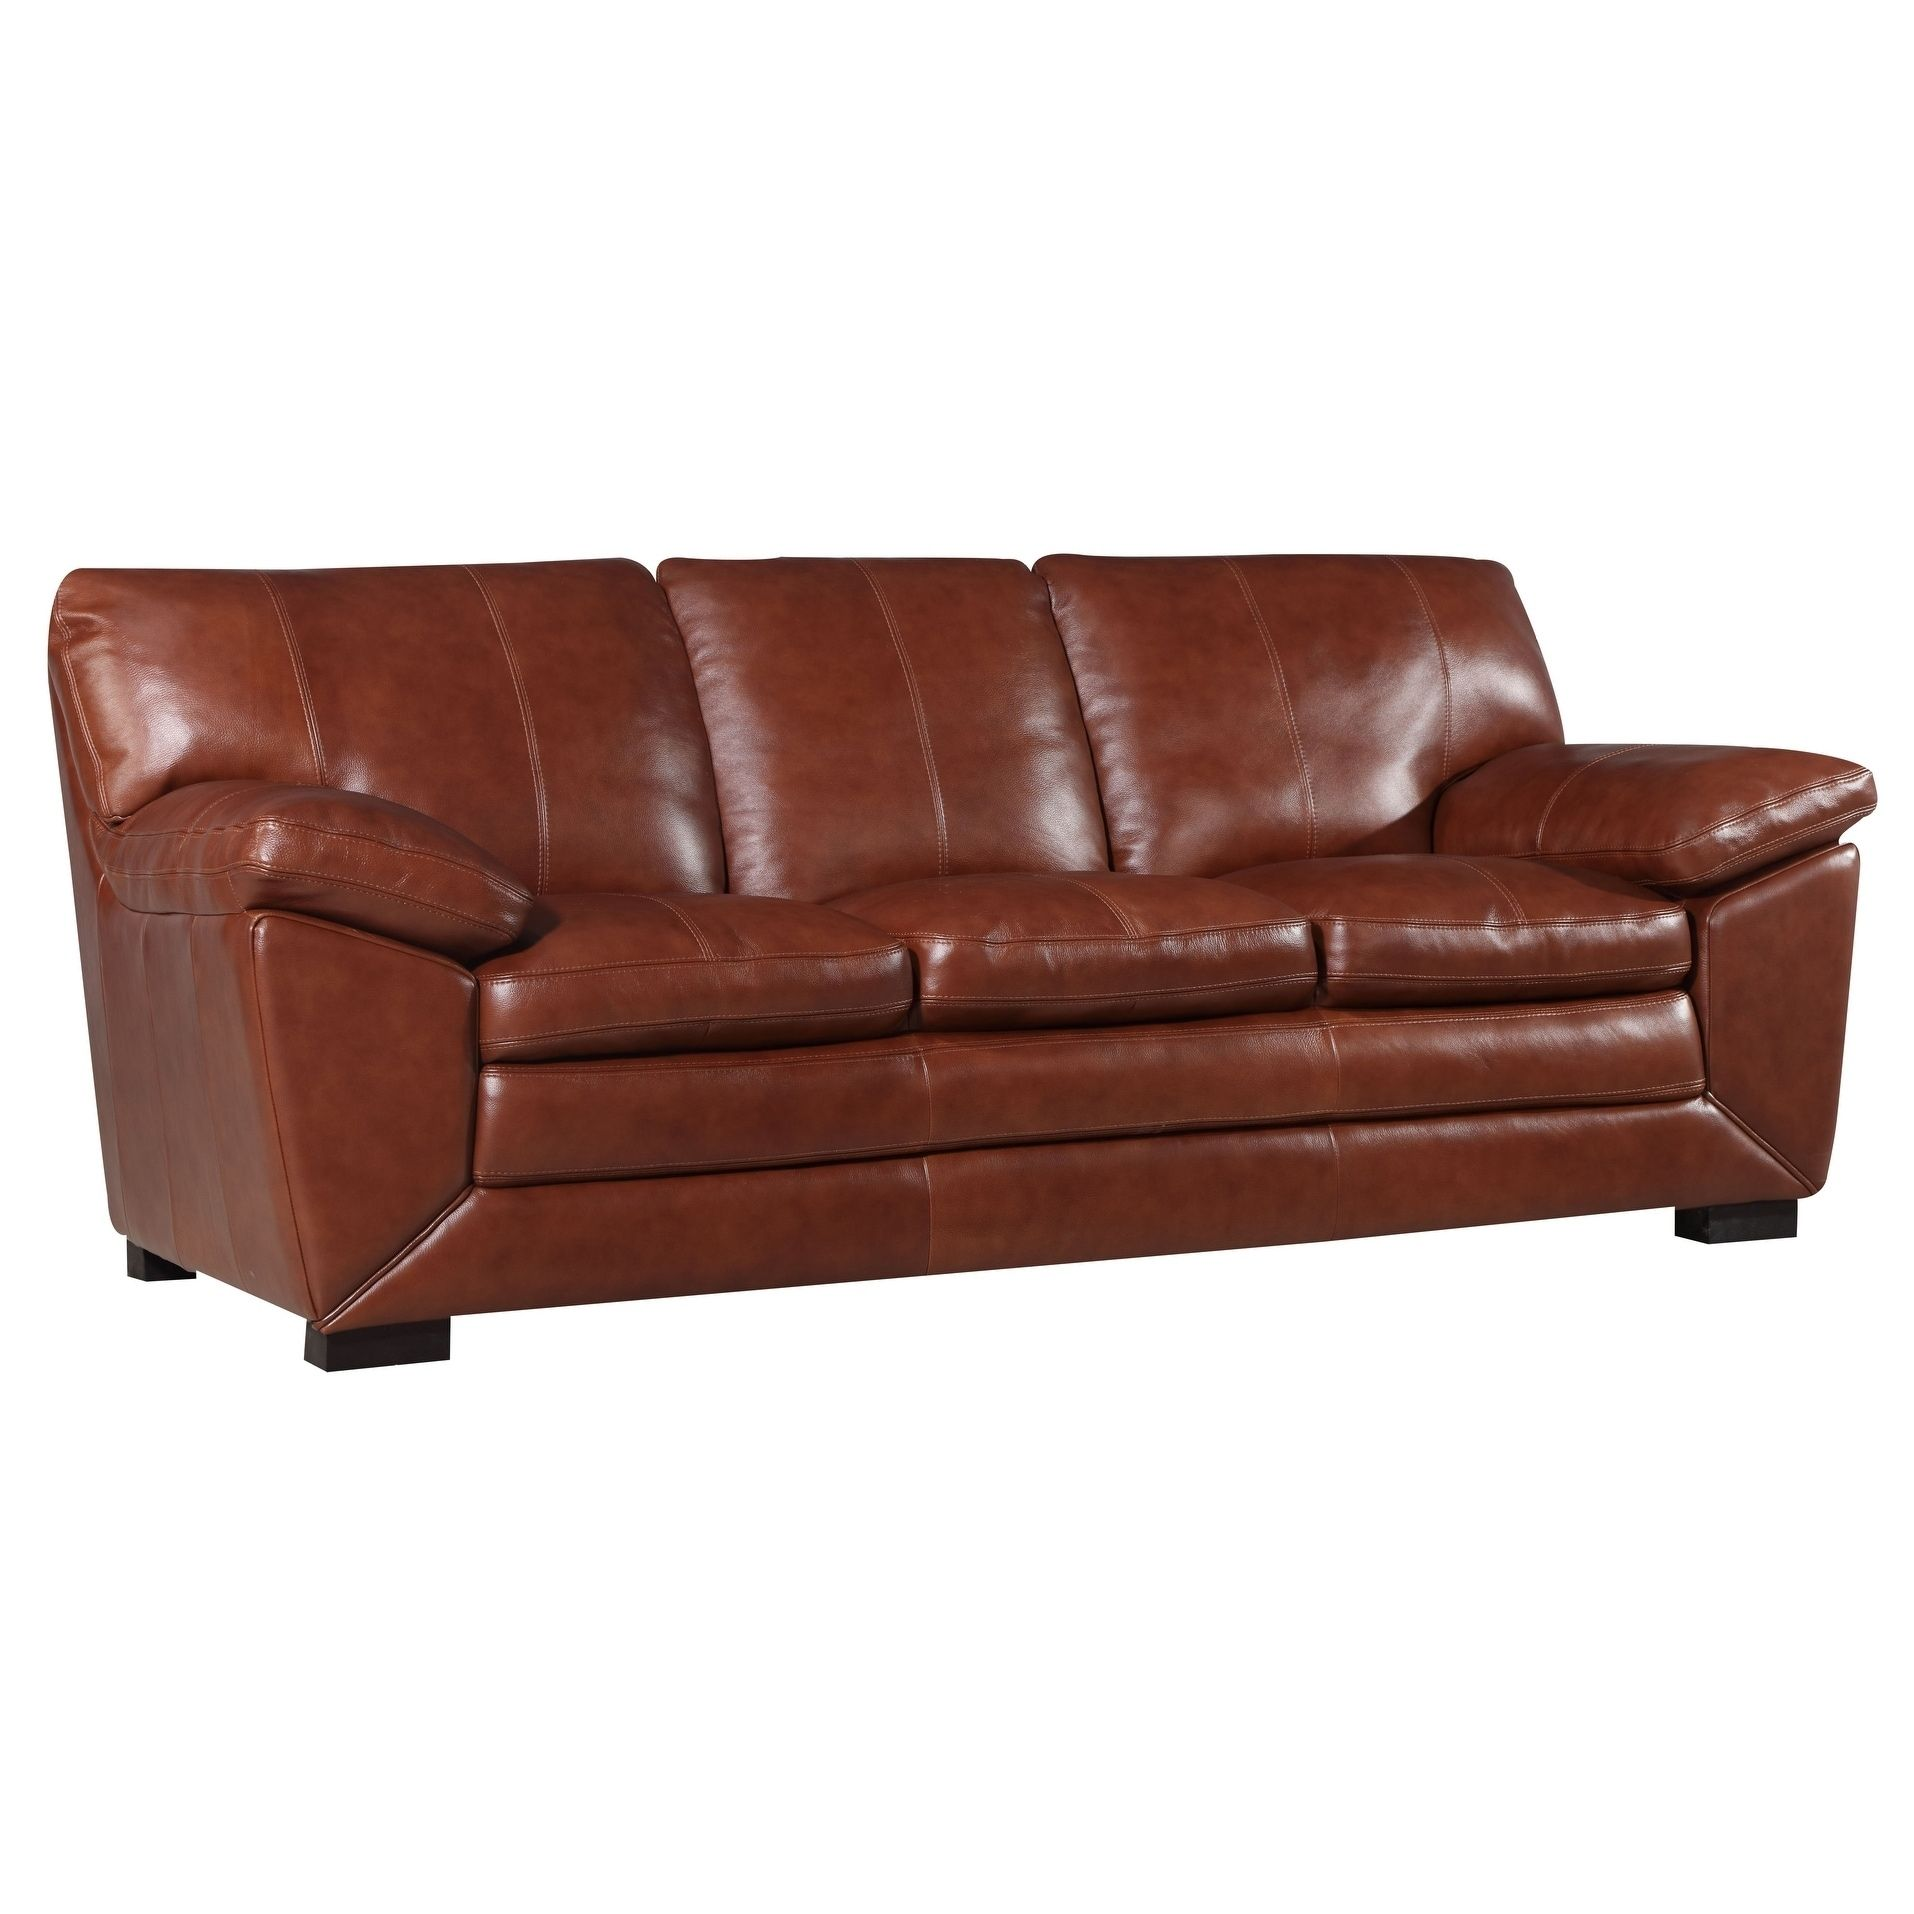 leather berg couches sofas couch kuka italian productdetailthumb new palazzo product sofa